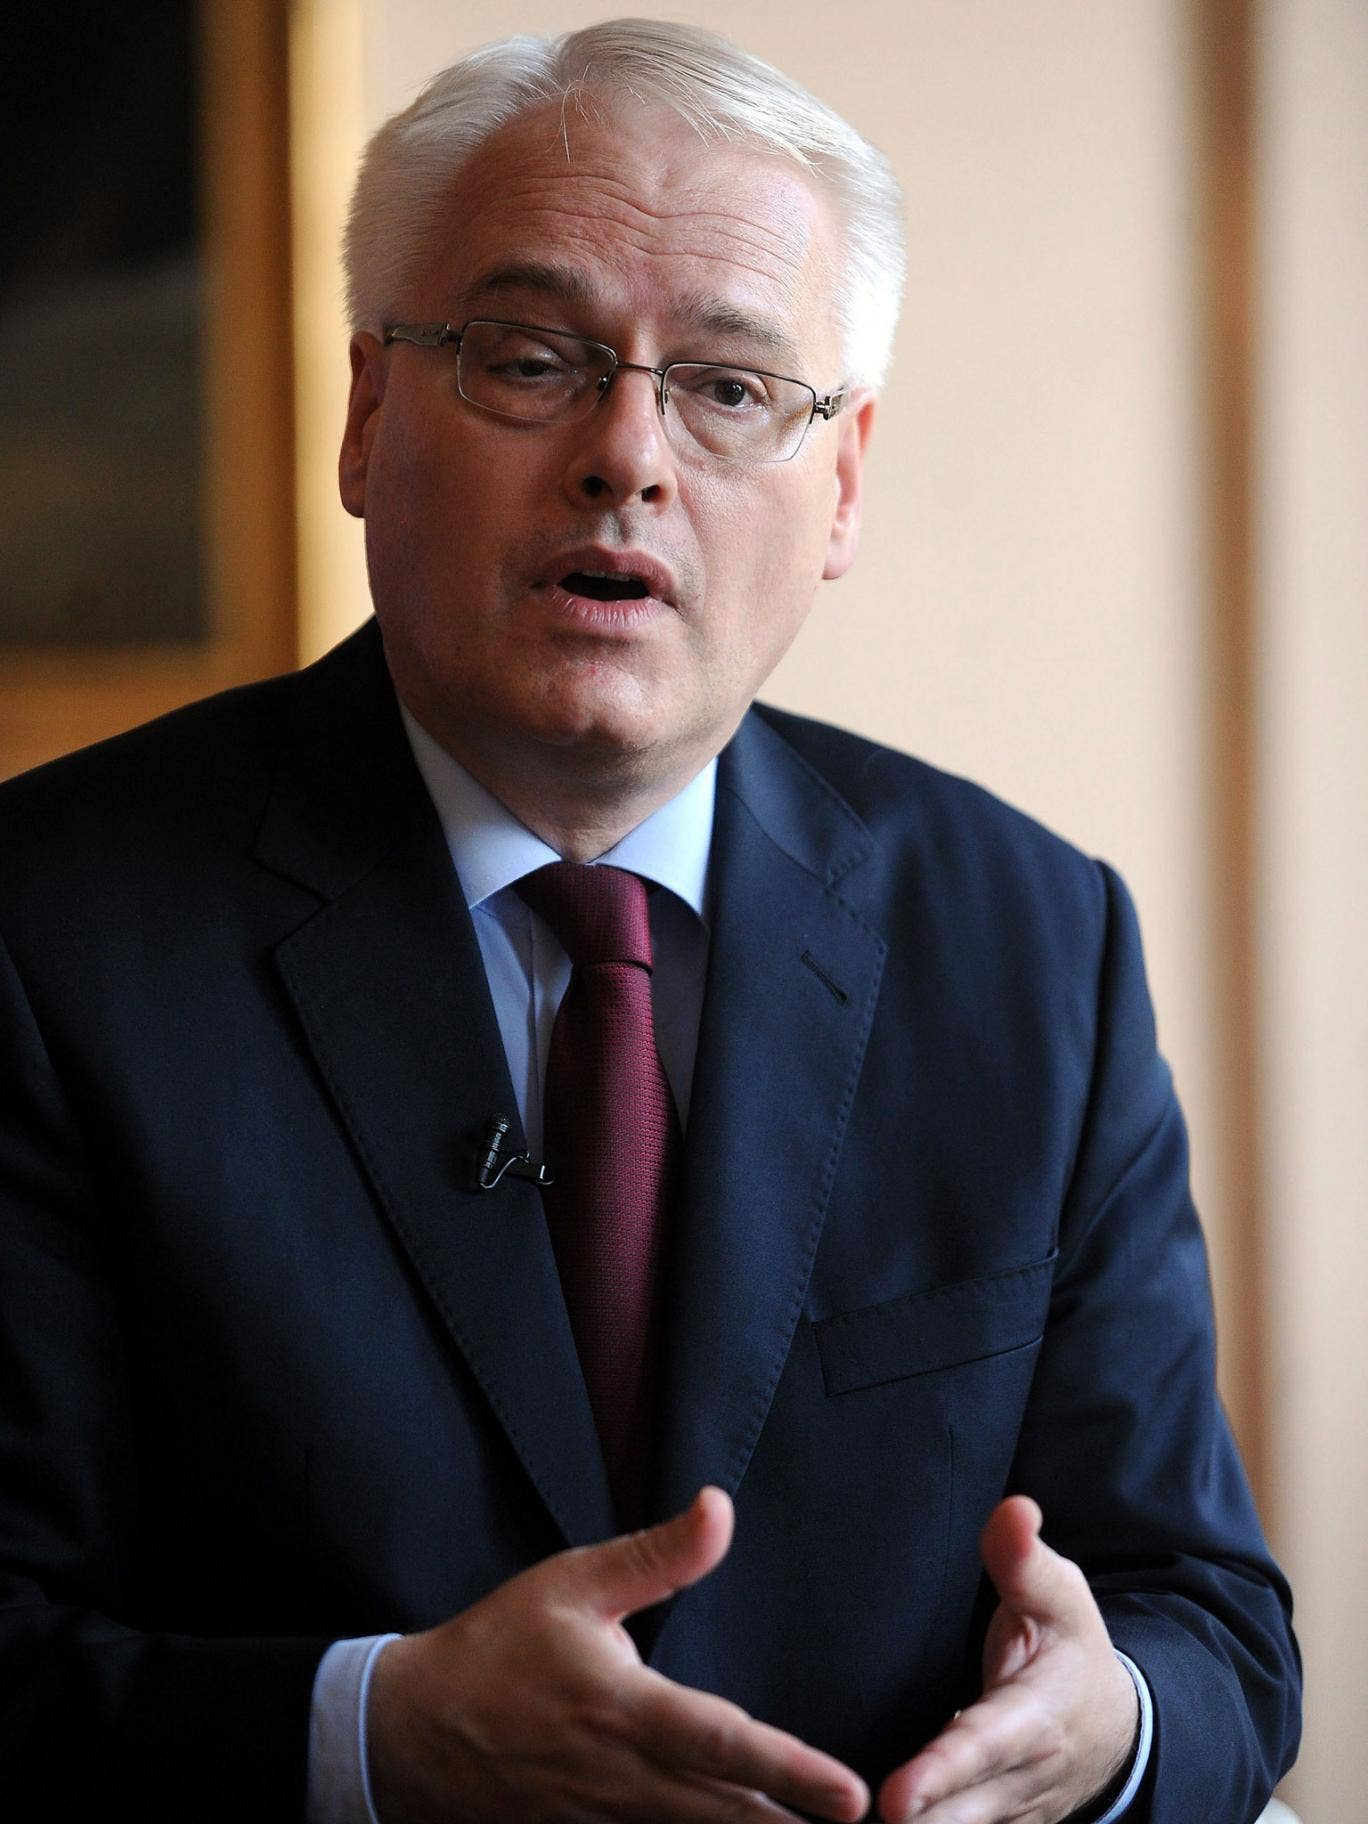 Croatia's President, Ivo Josipovic, says the only future for his country is in Europe